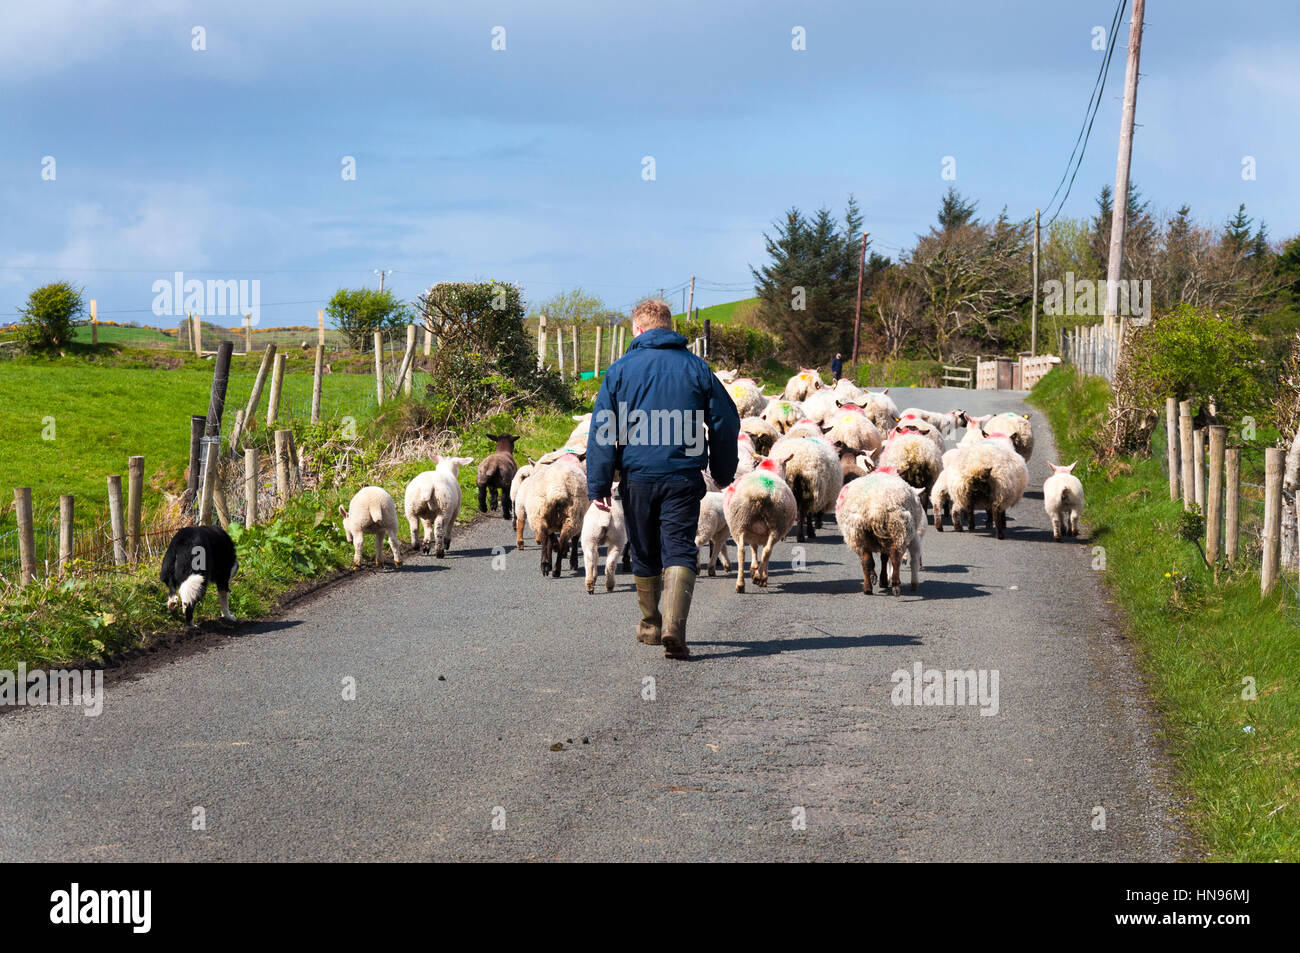 Sheep farmer with flock on road in County Donegal, Ireland - Stock Image